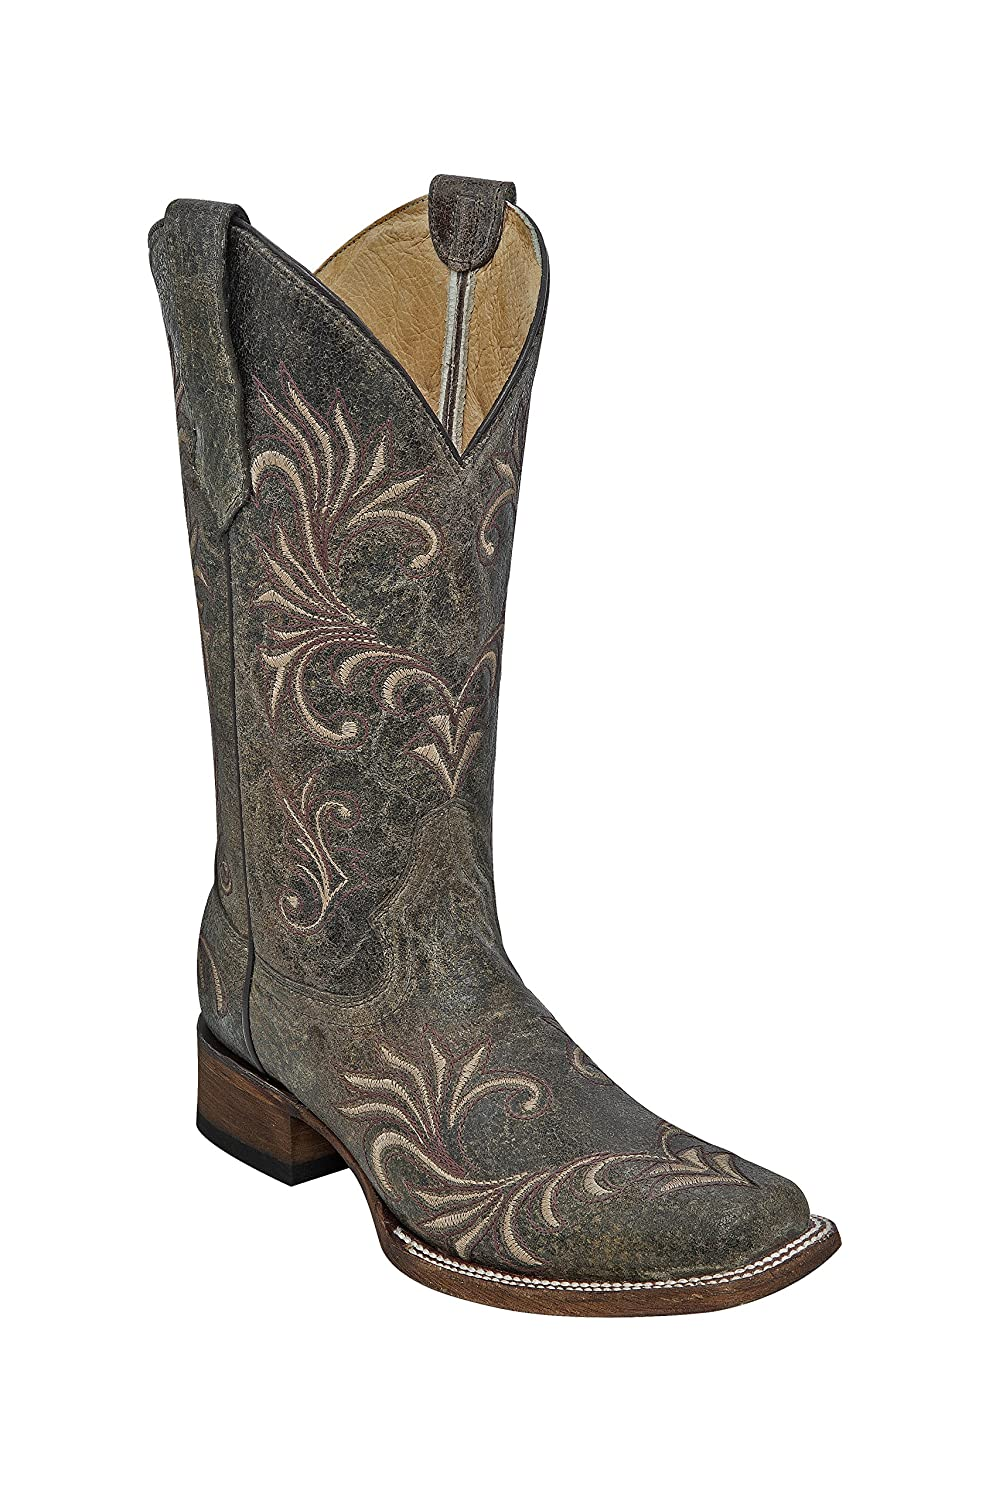 Corral Circle G Women's Square Toe Distressed Antique Green Leather Cowgirl Boots B01DRWN5NQ 7 B(M) US|Brown